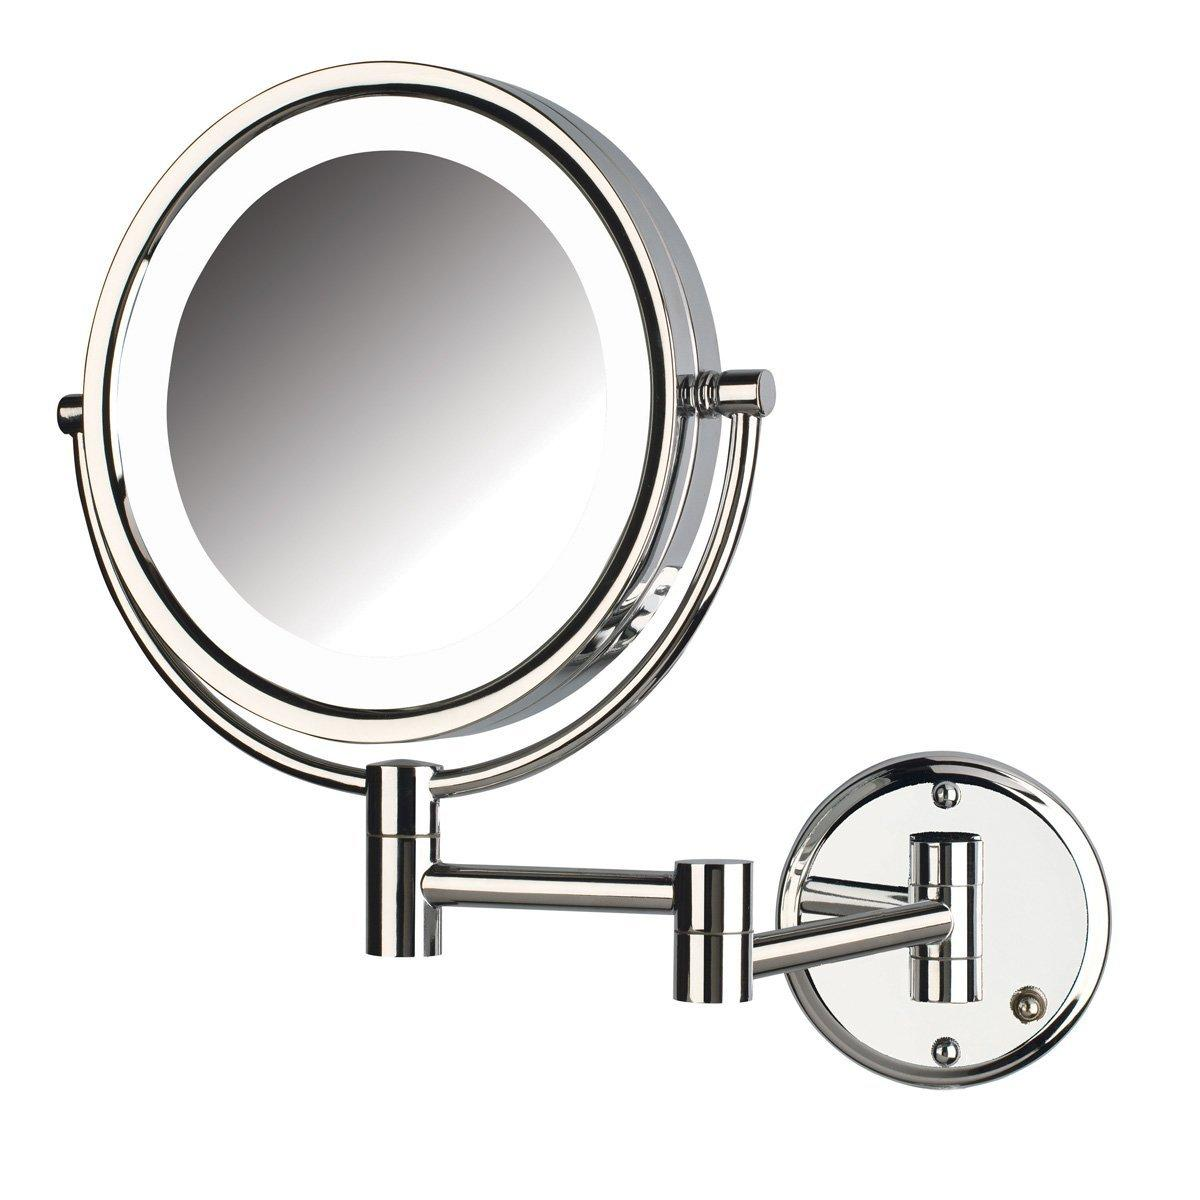 Wall mounted makeup mirror with lights - View Larger